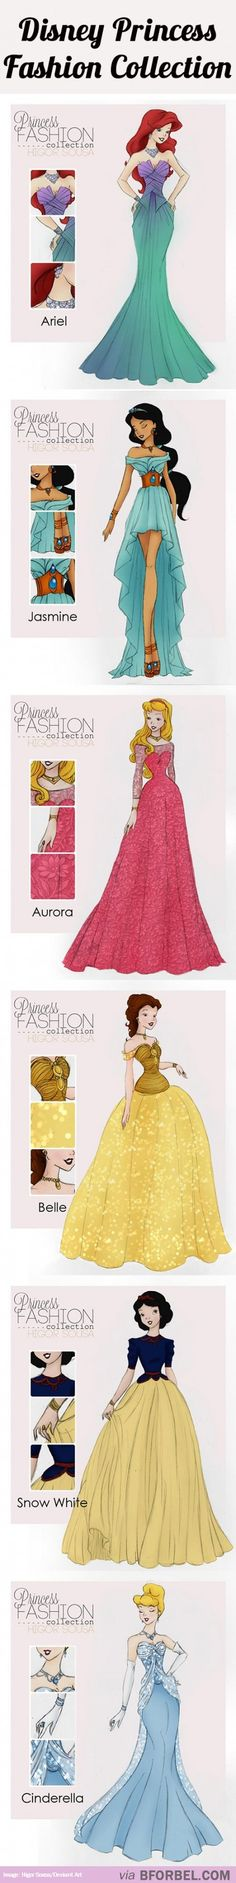 6 Disney Princess Fashion Collections… love jasmine!